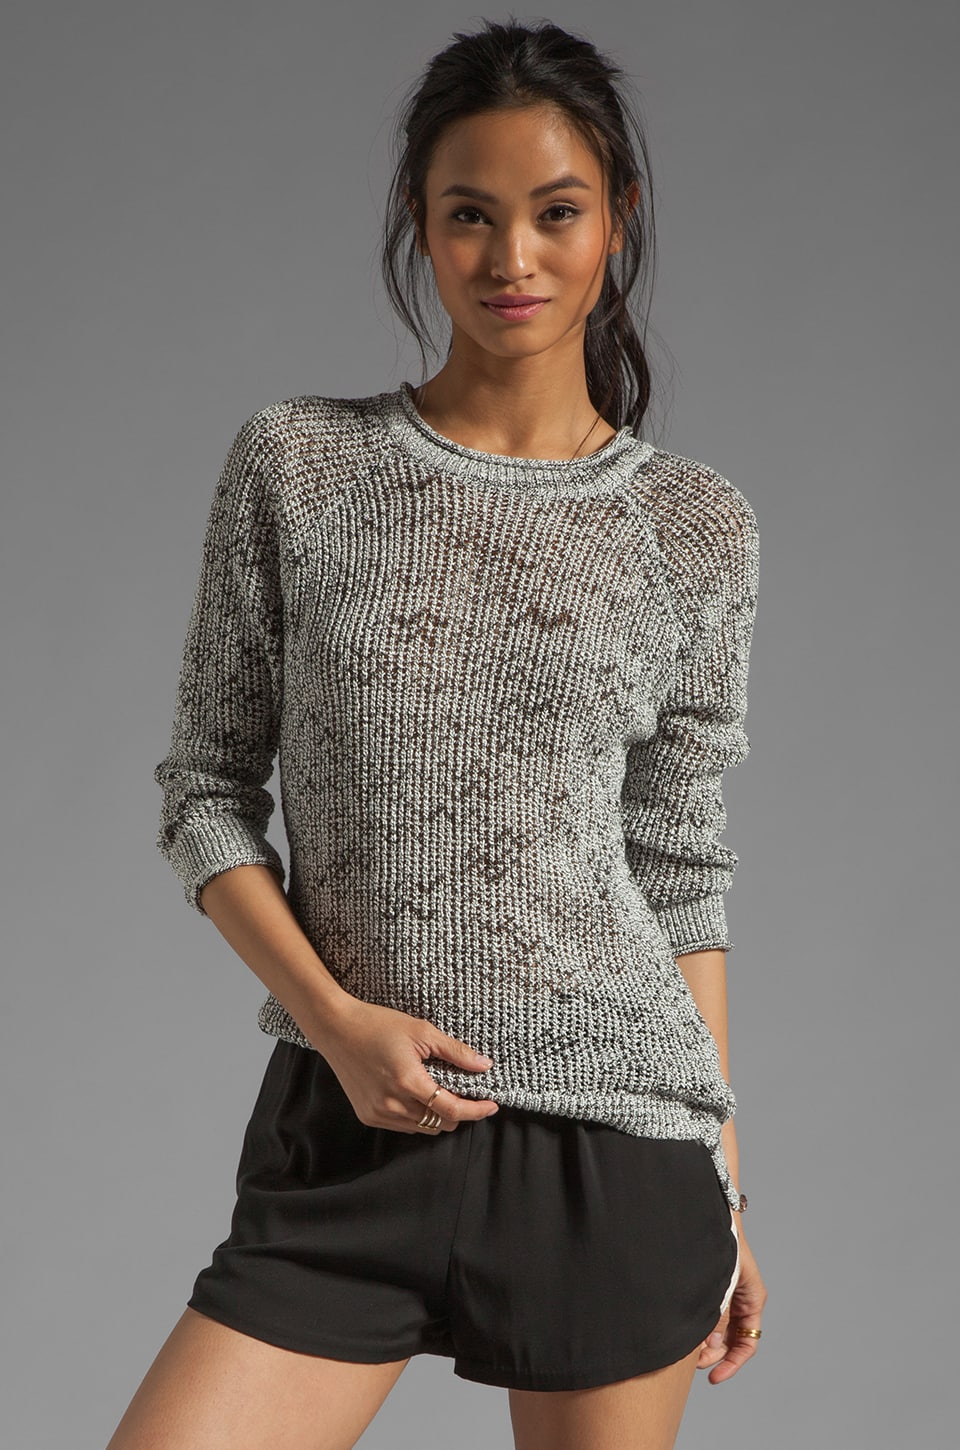 Line The Sandman Sweater in Steamship